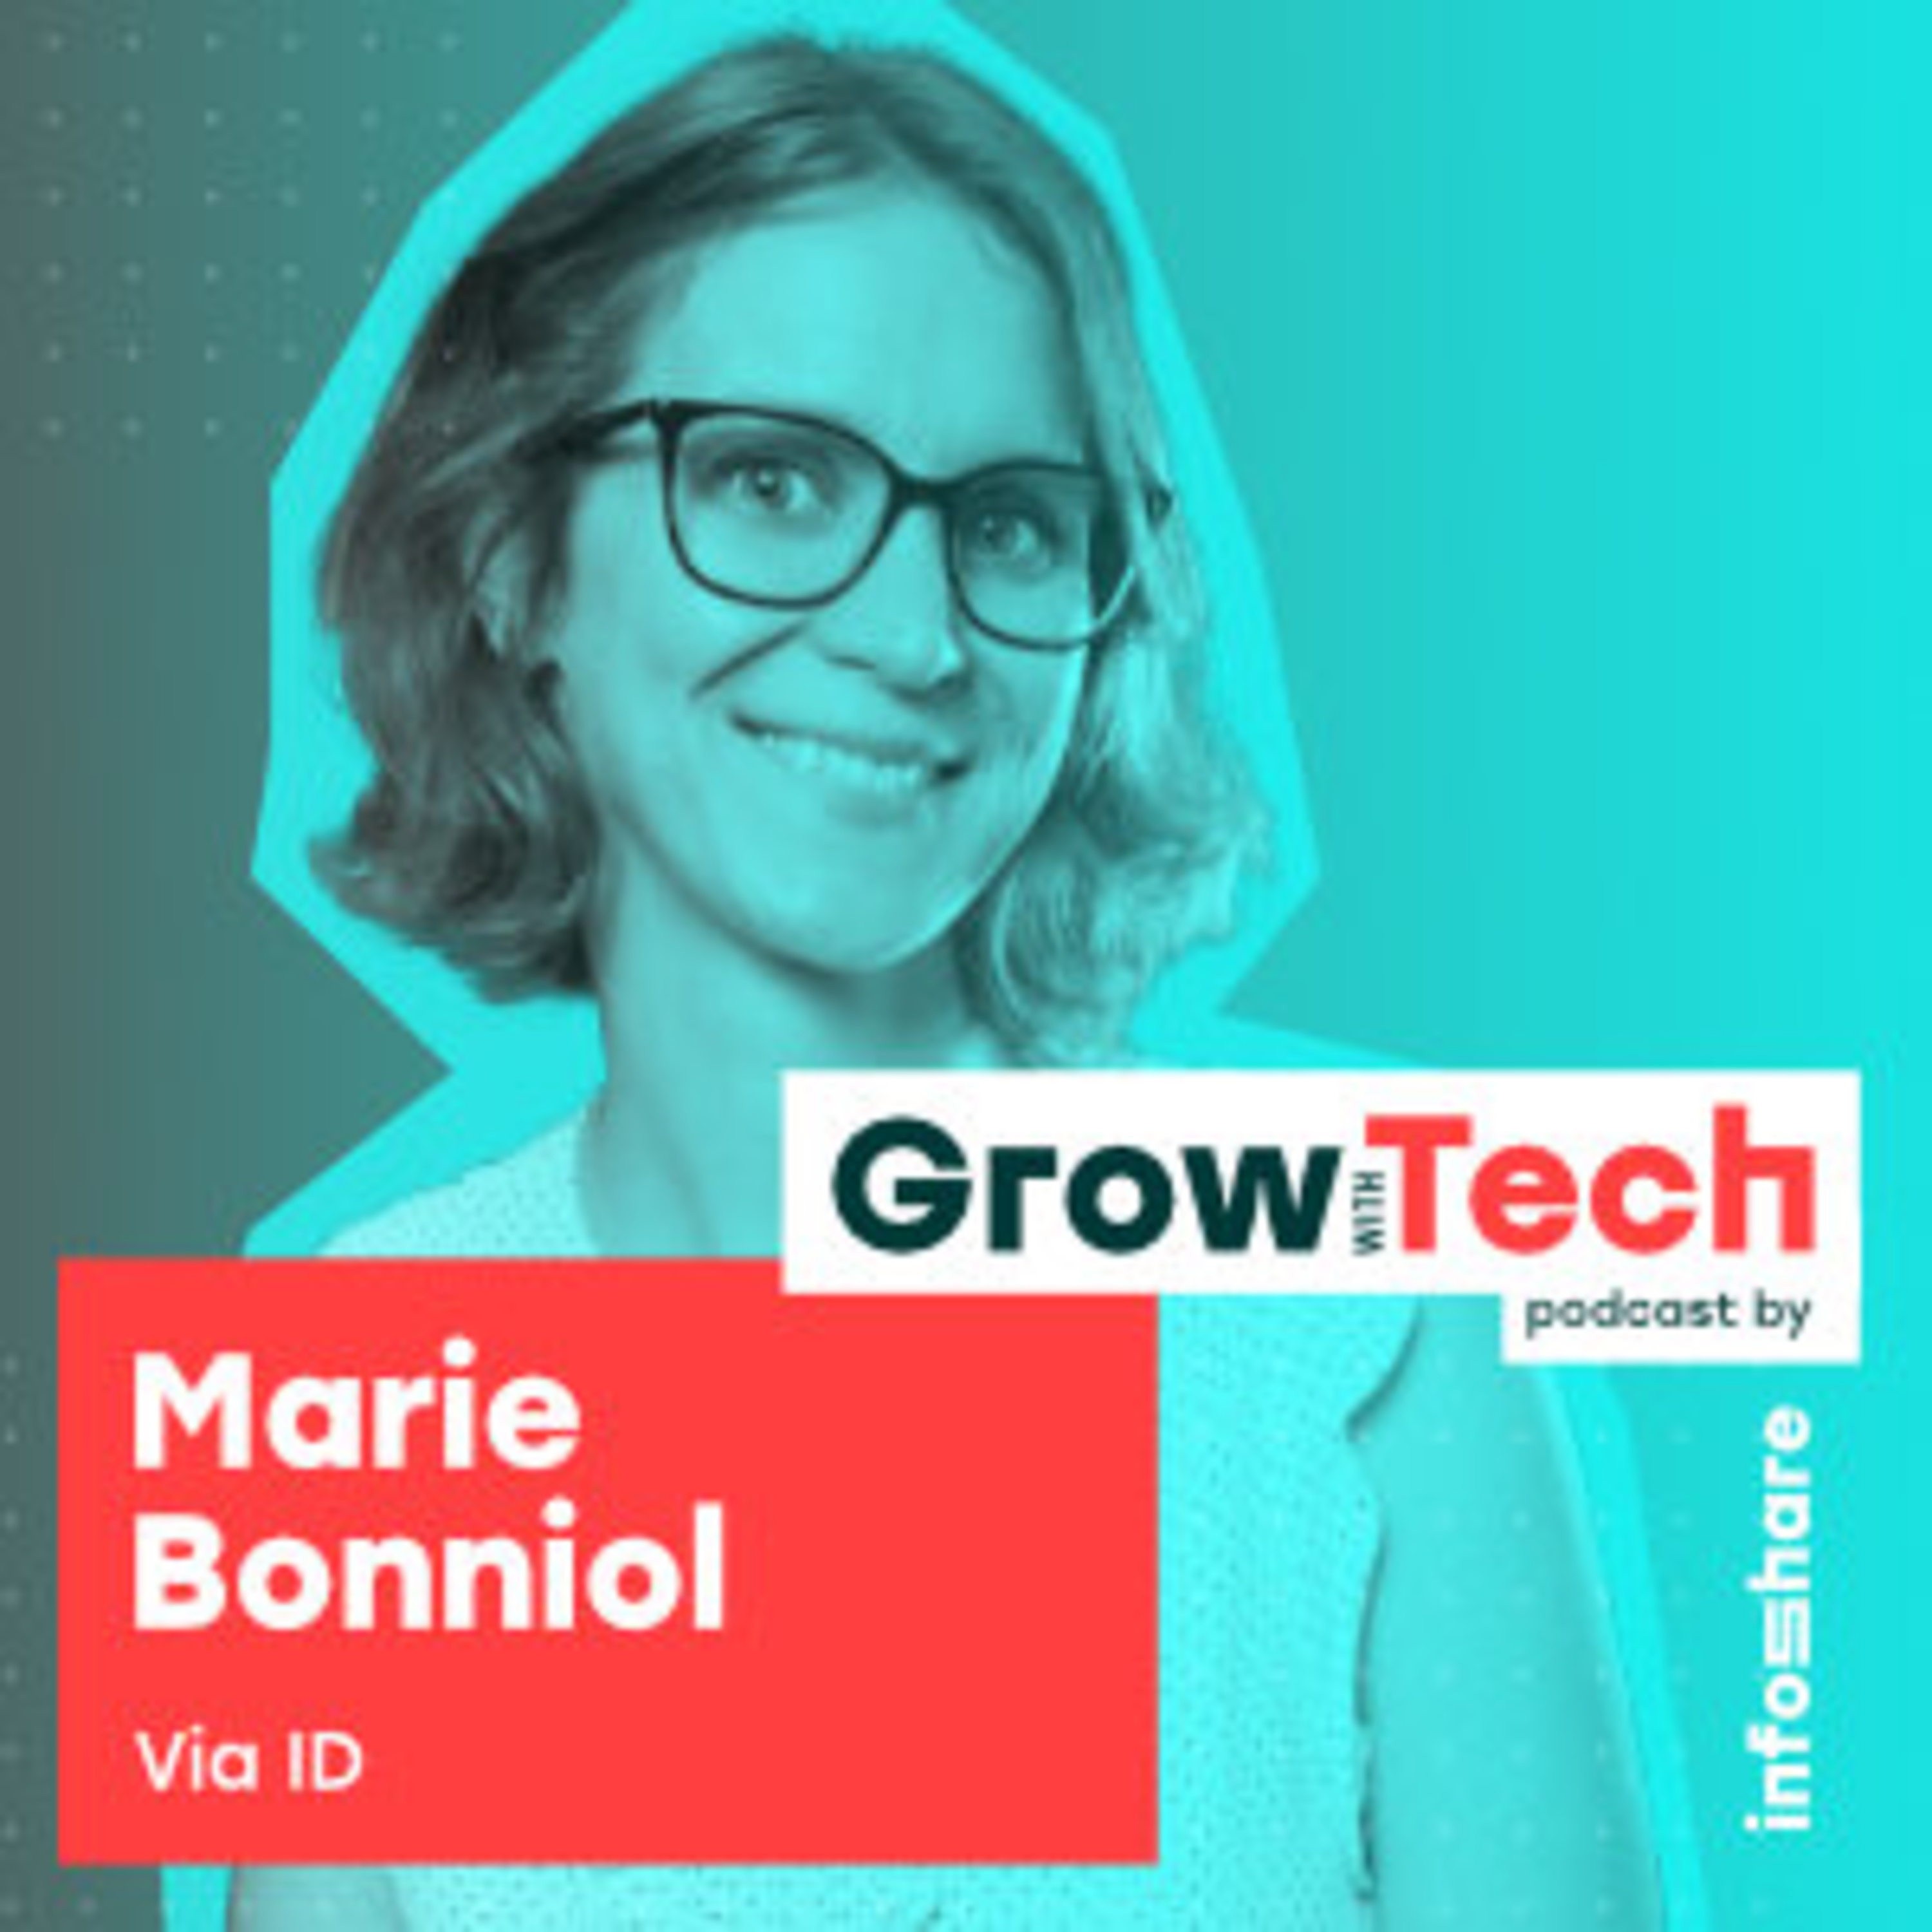 Le voyage to the French startup ecosystem   Marie Bonniol (Via ID)